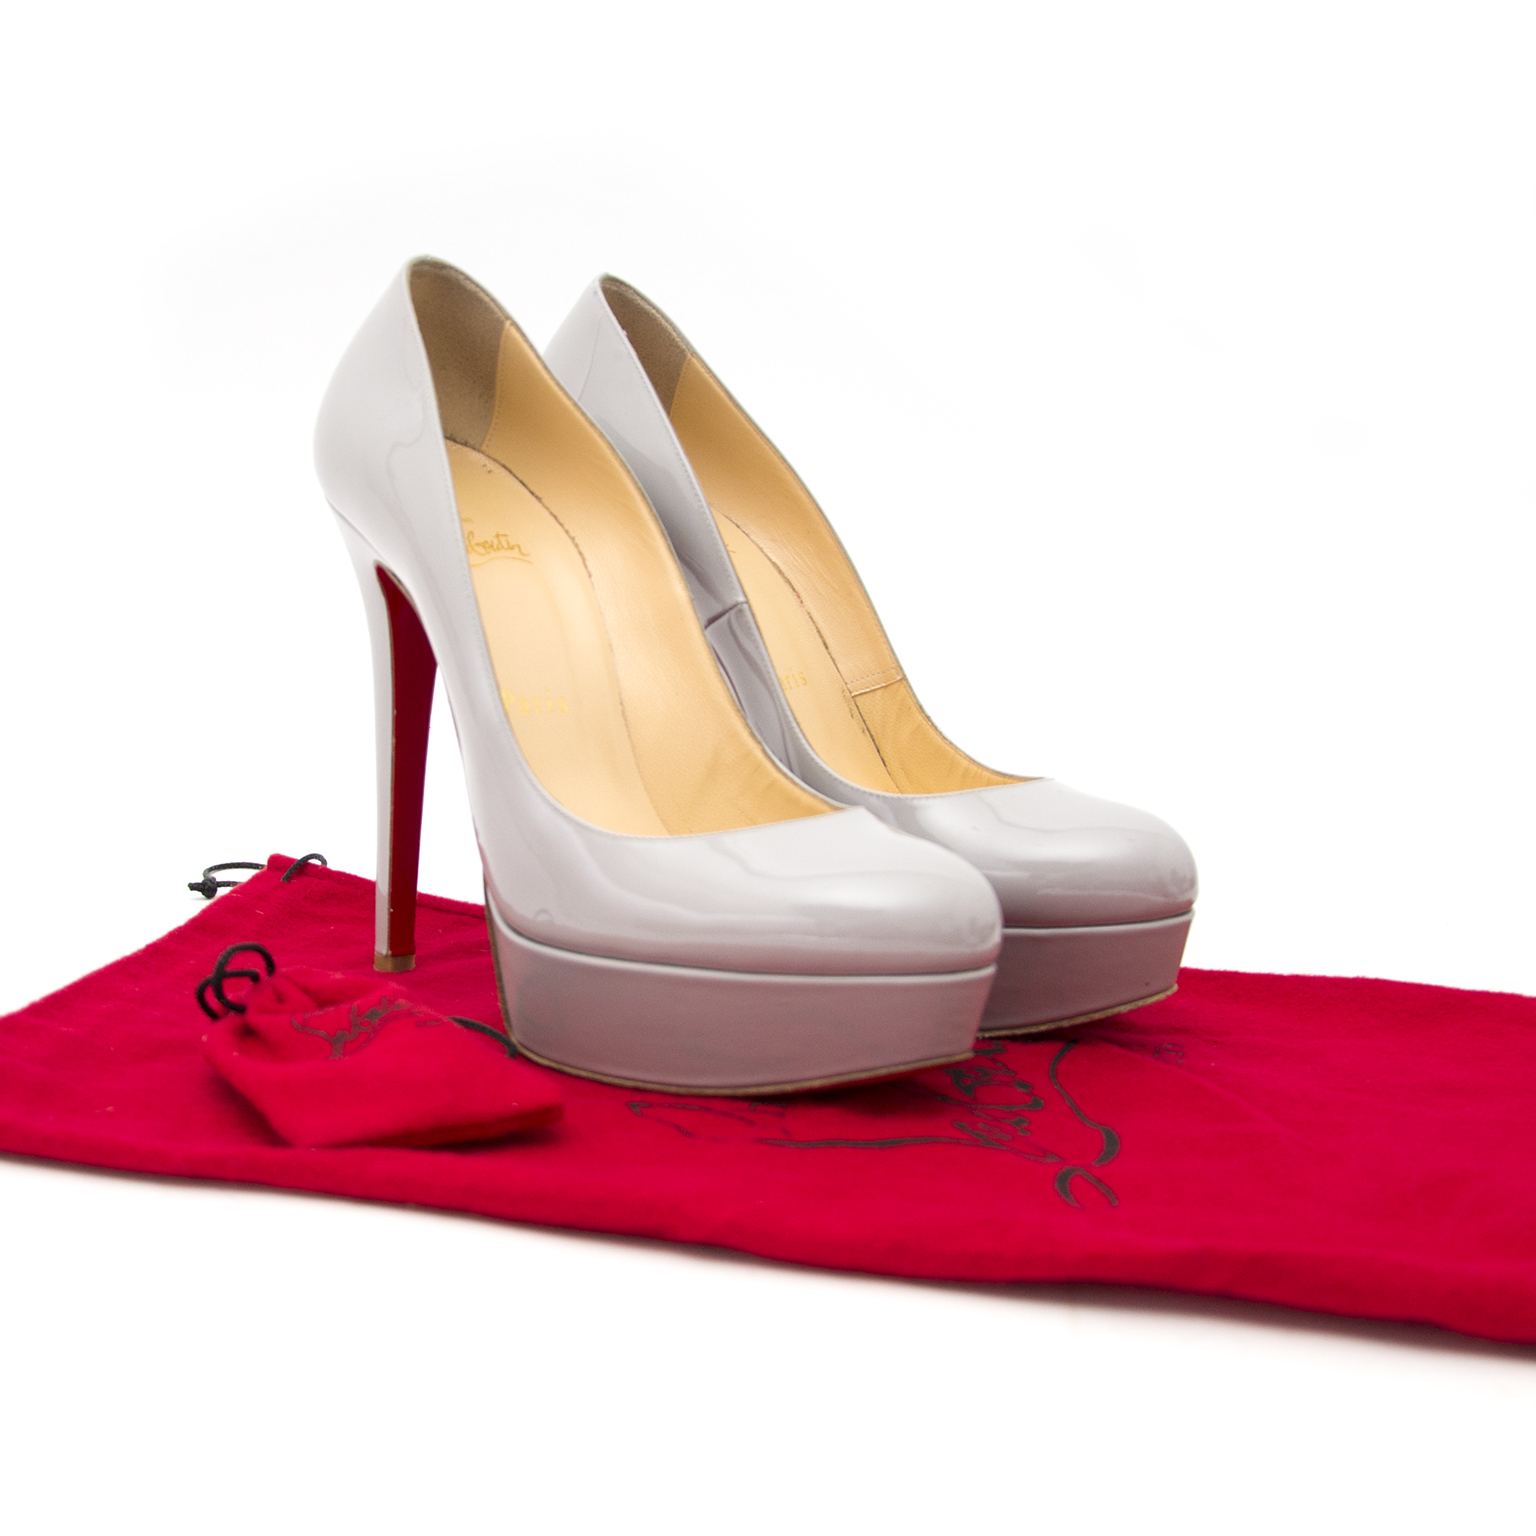 Louboutin Bianca 140 Patent Calf Pumps at the best price 2017